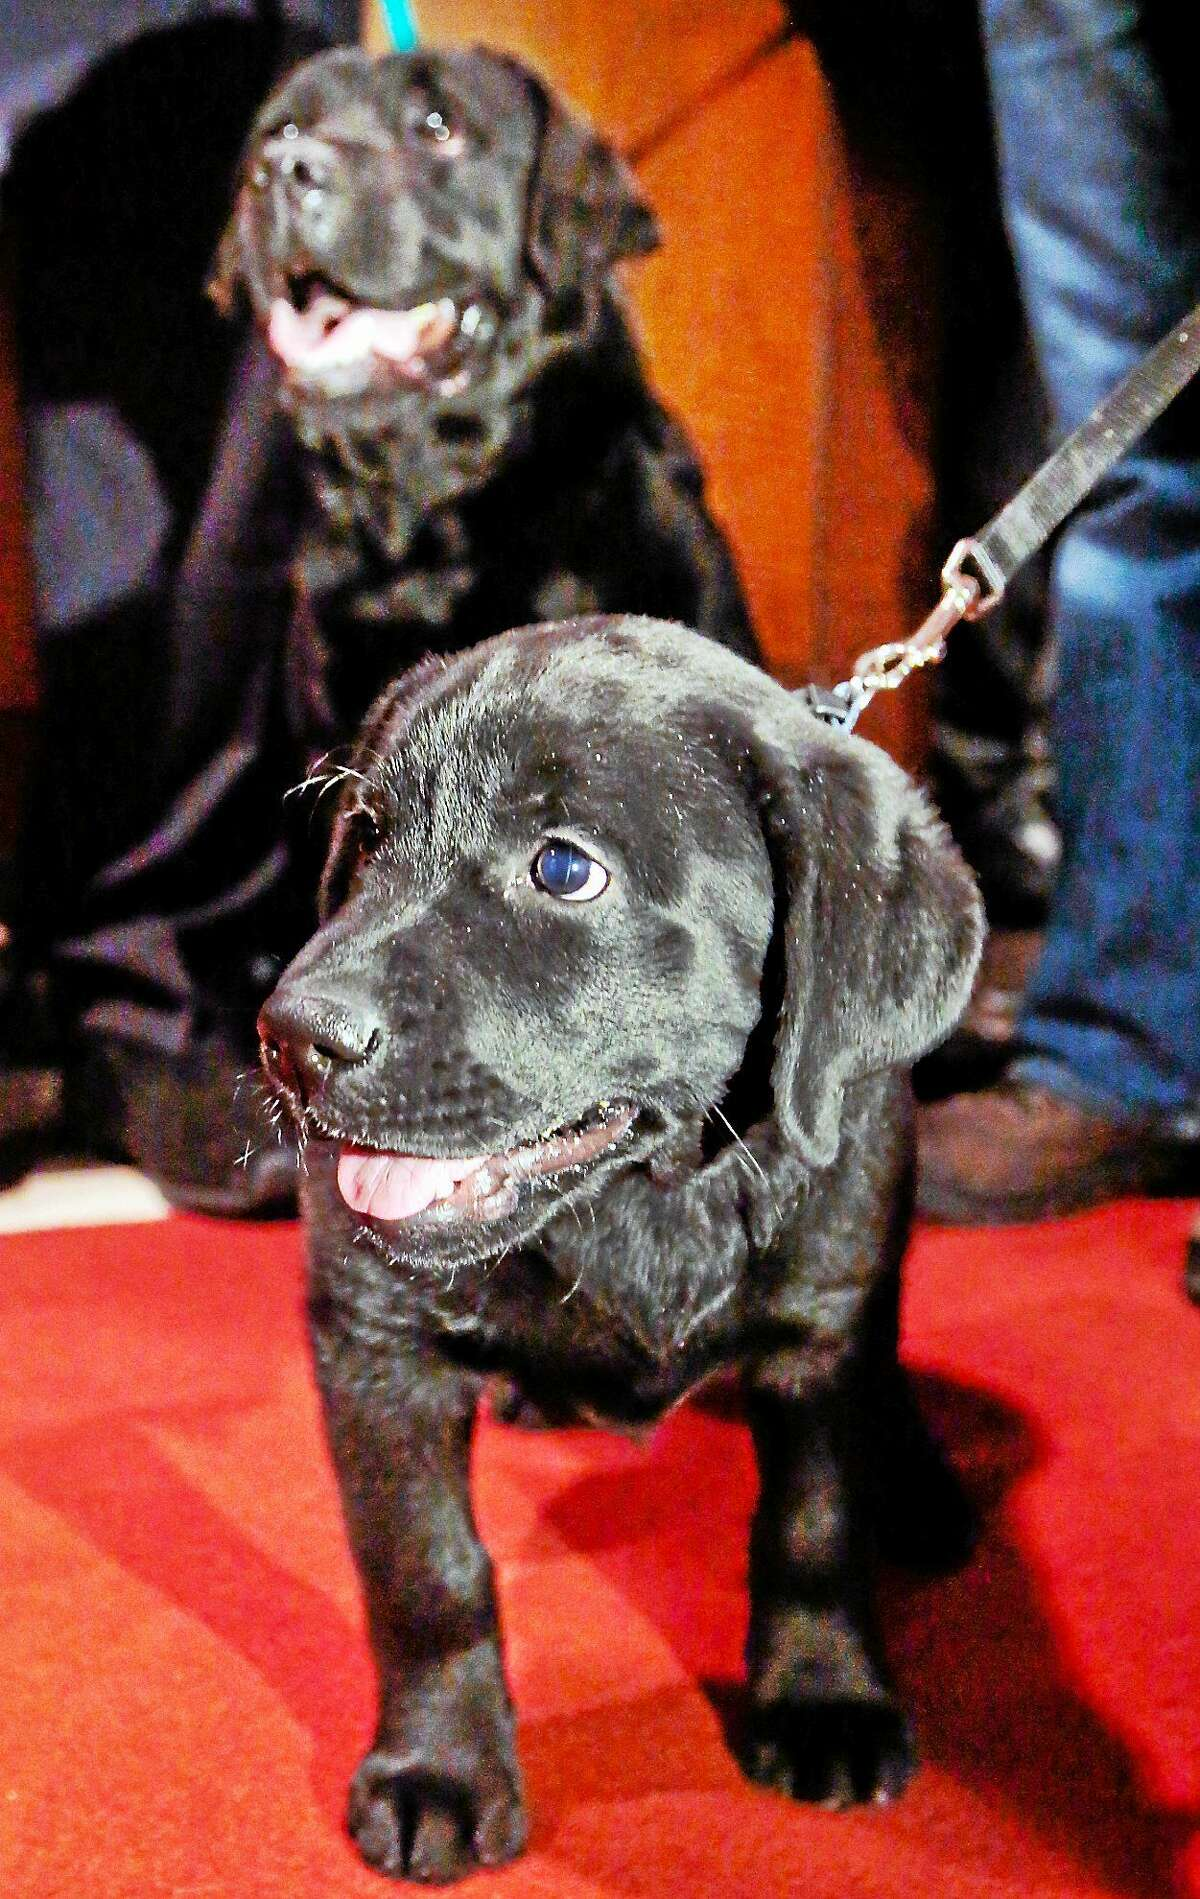 Labrador retrievers Carmen, top, and Teagan, of Galloway, N.J., are posed during a press conference on Jan. 31, 2014, in New York.